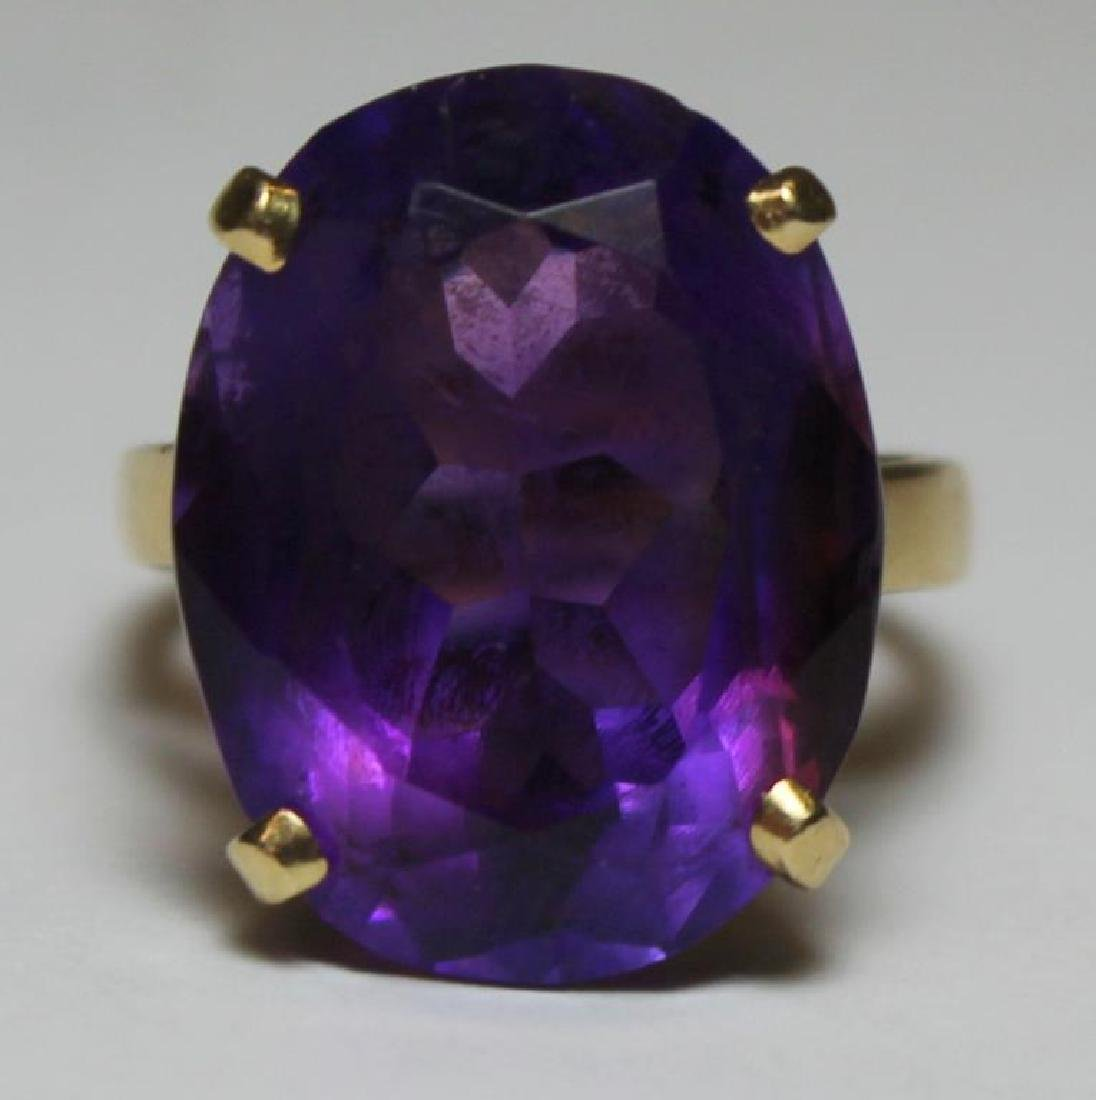 JEWELRY. 14kt Gold and Amethyst Cocktail Ring.